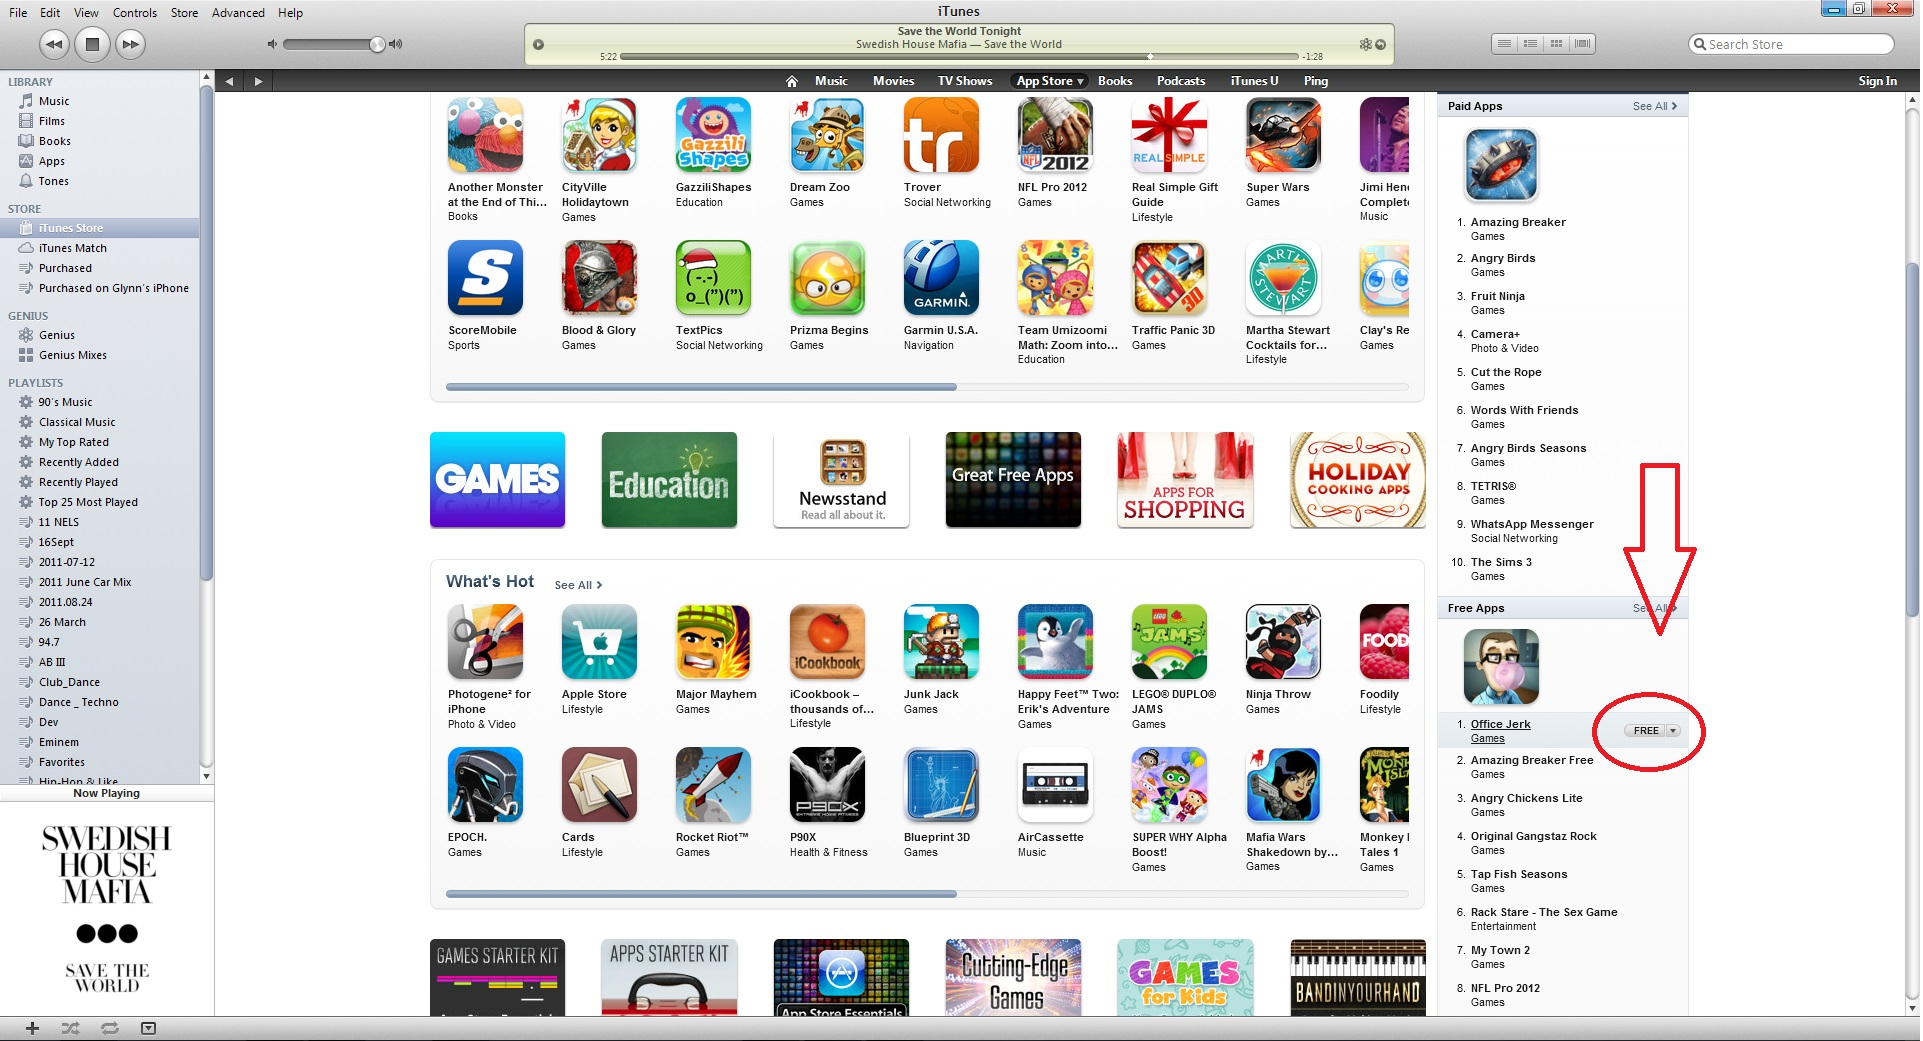 How to download apps to my ipod from itunes